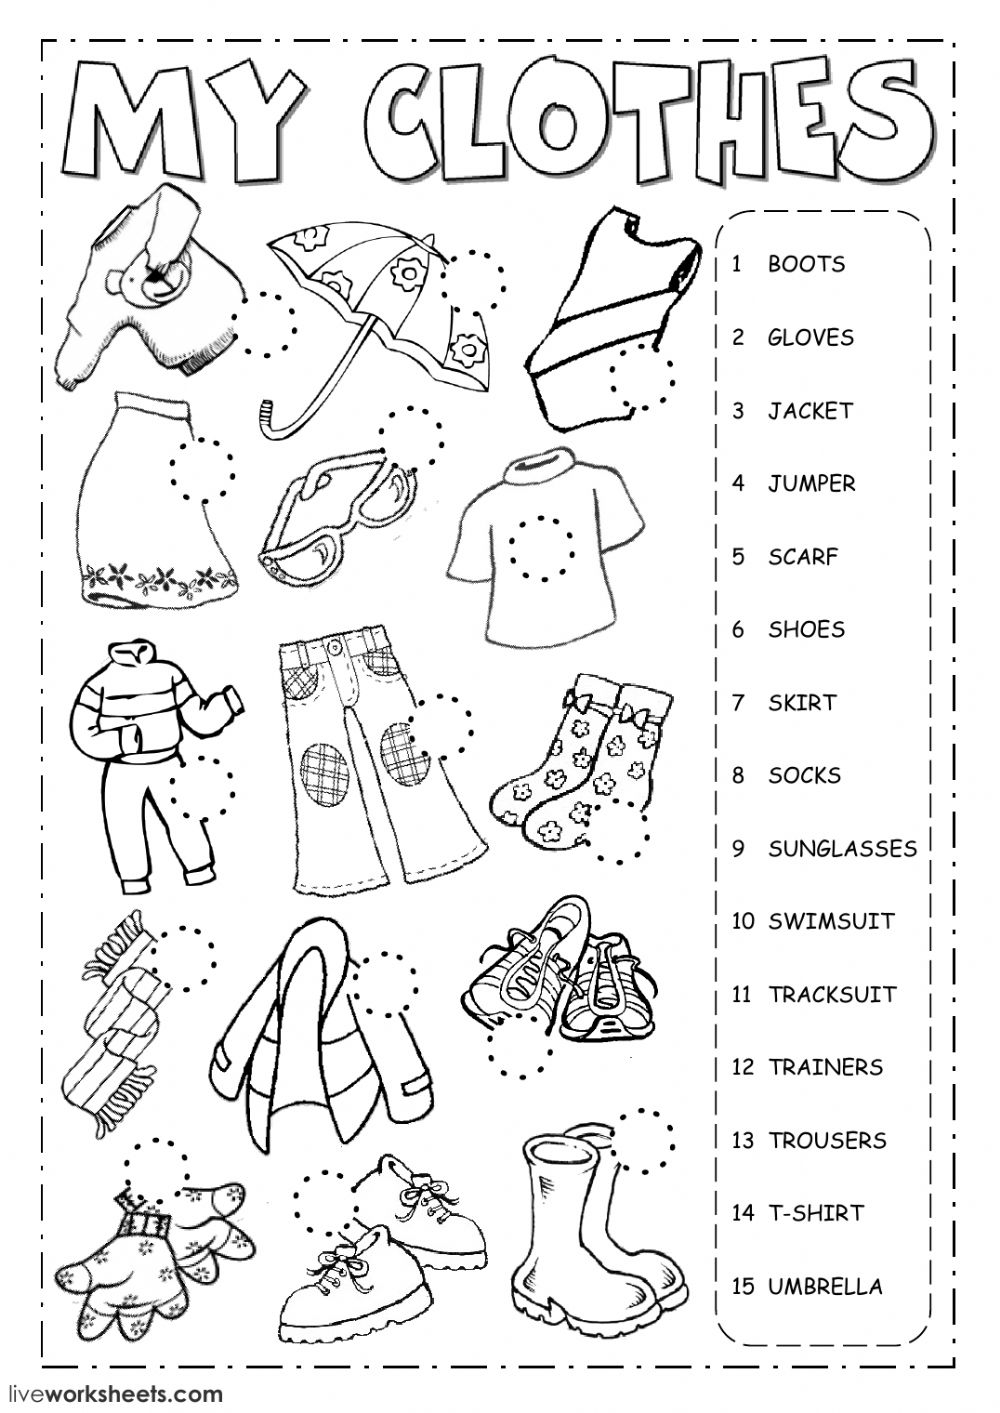 The Clothes Interactive Worksheet